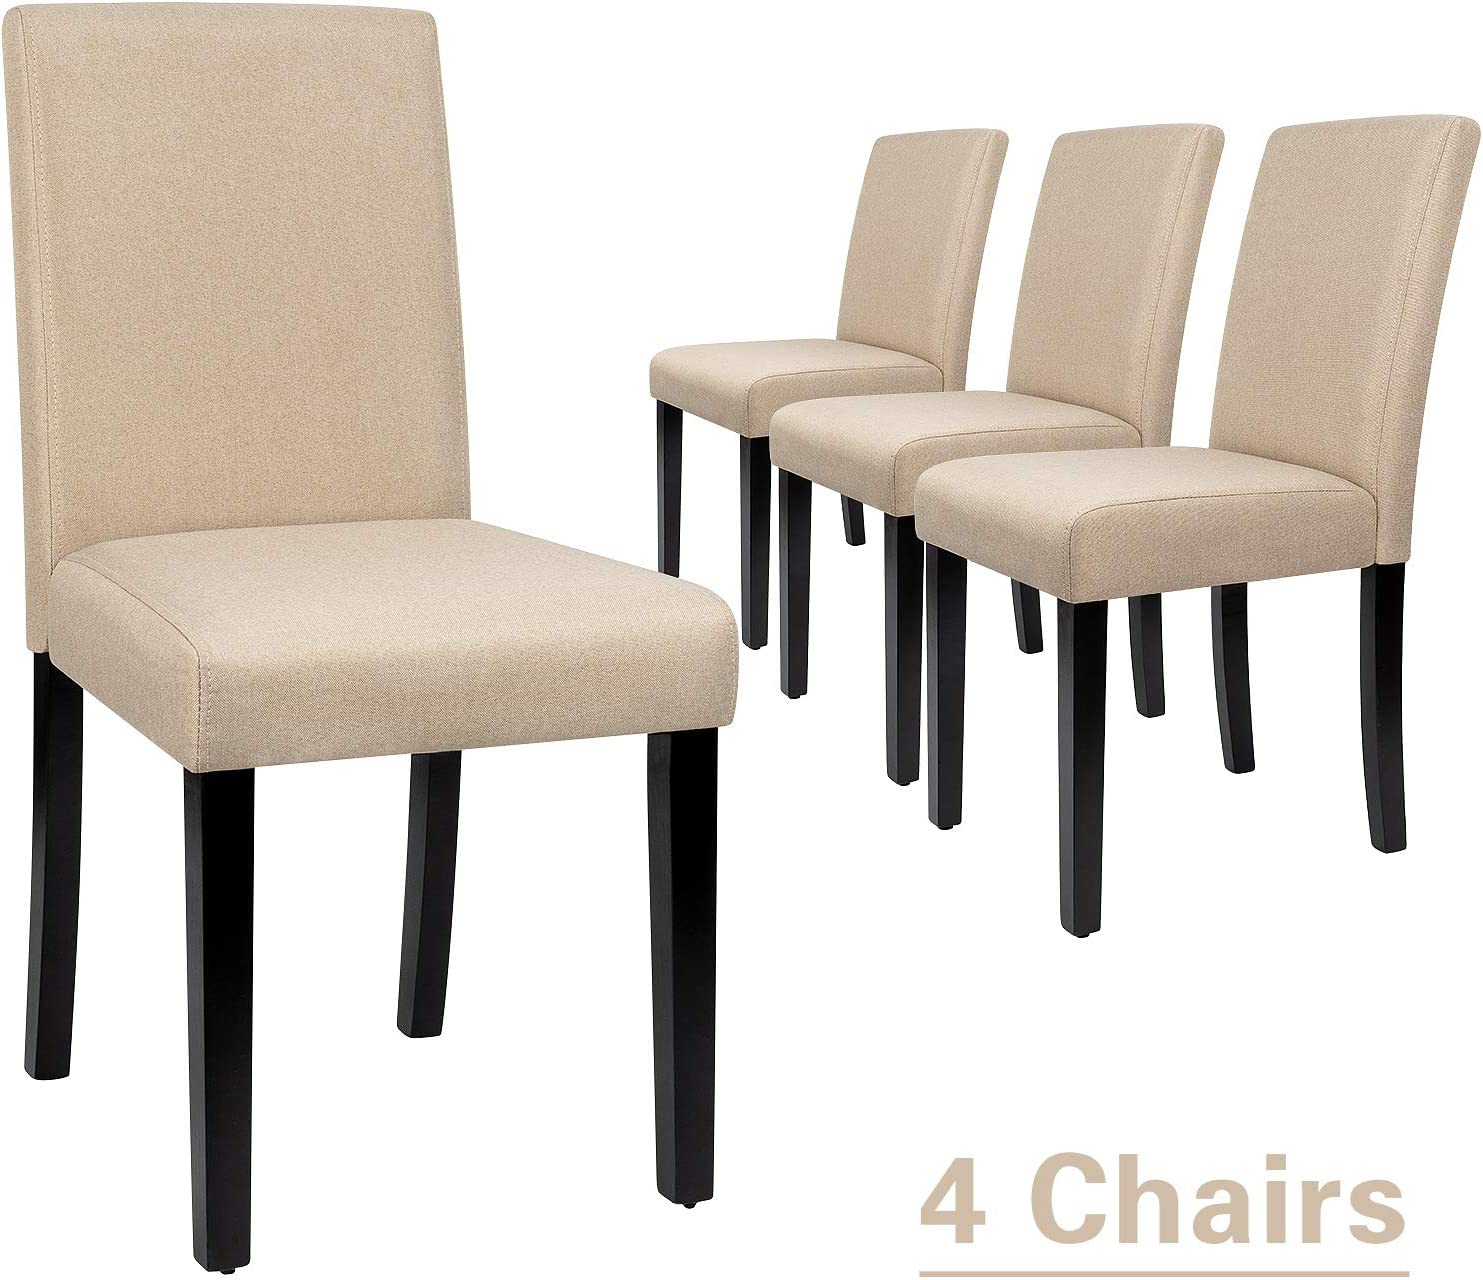 Furmax Dining Chairs Urban Style Fabric Parson Chairs Kitchen Living Room Armless Side Chair with Solid Wood Legs Set of 4 (Beige)